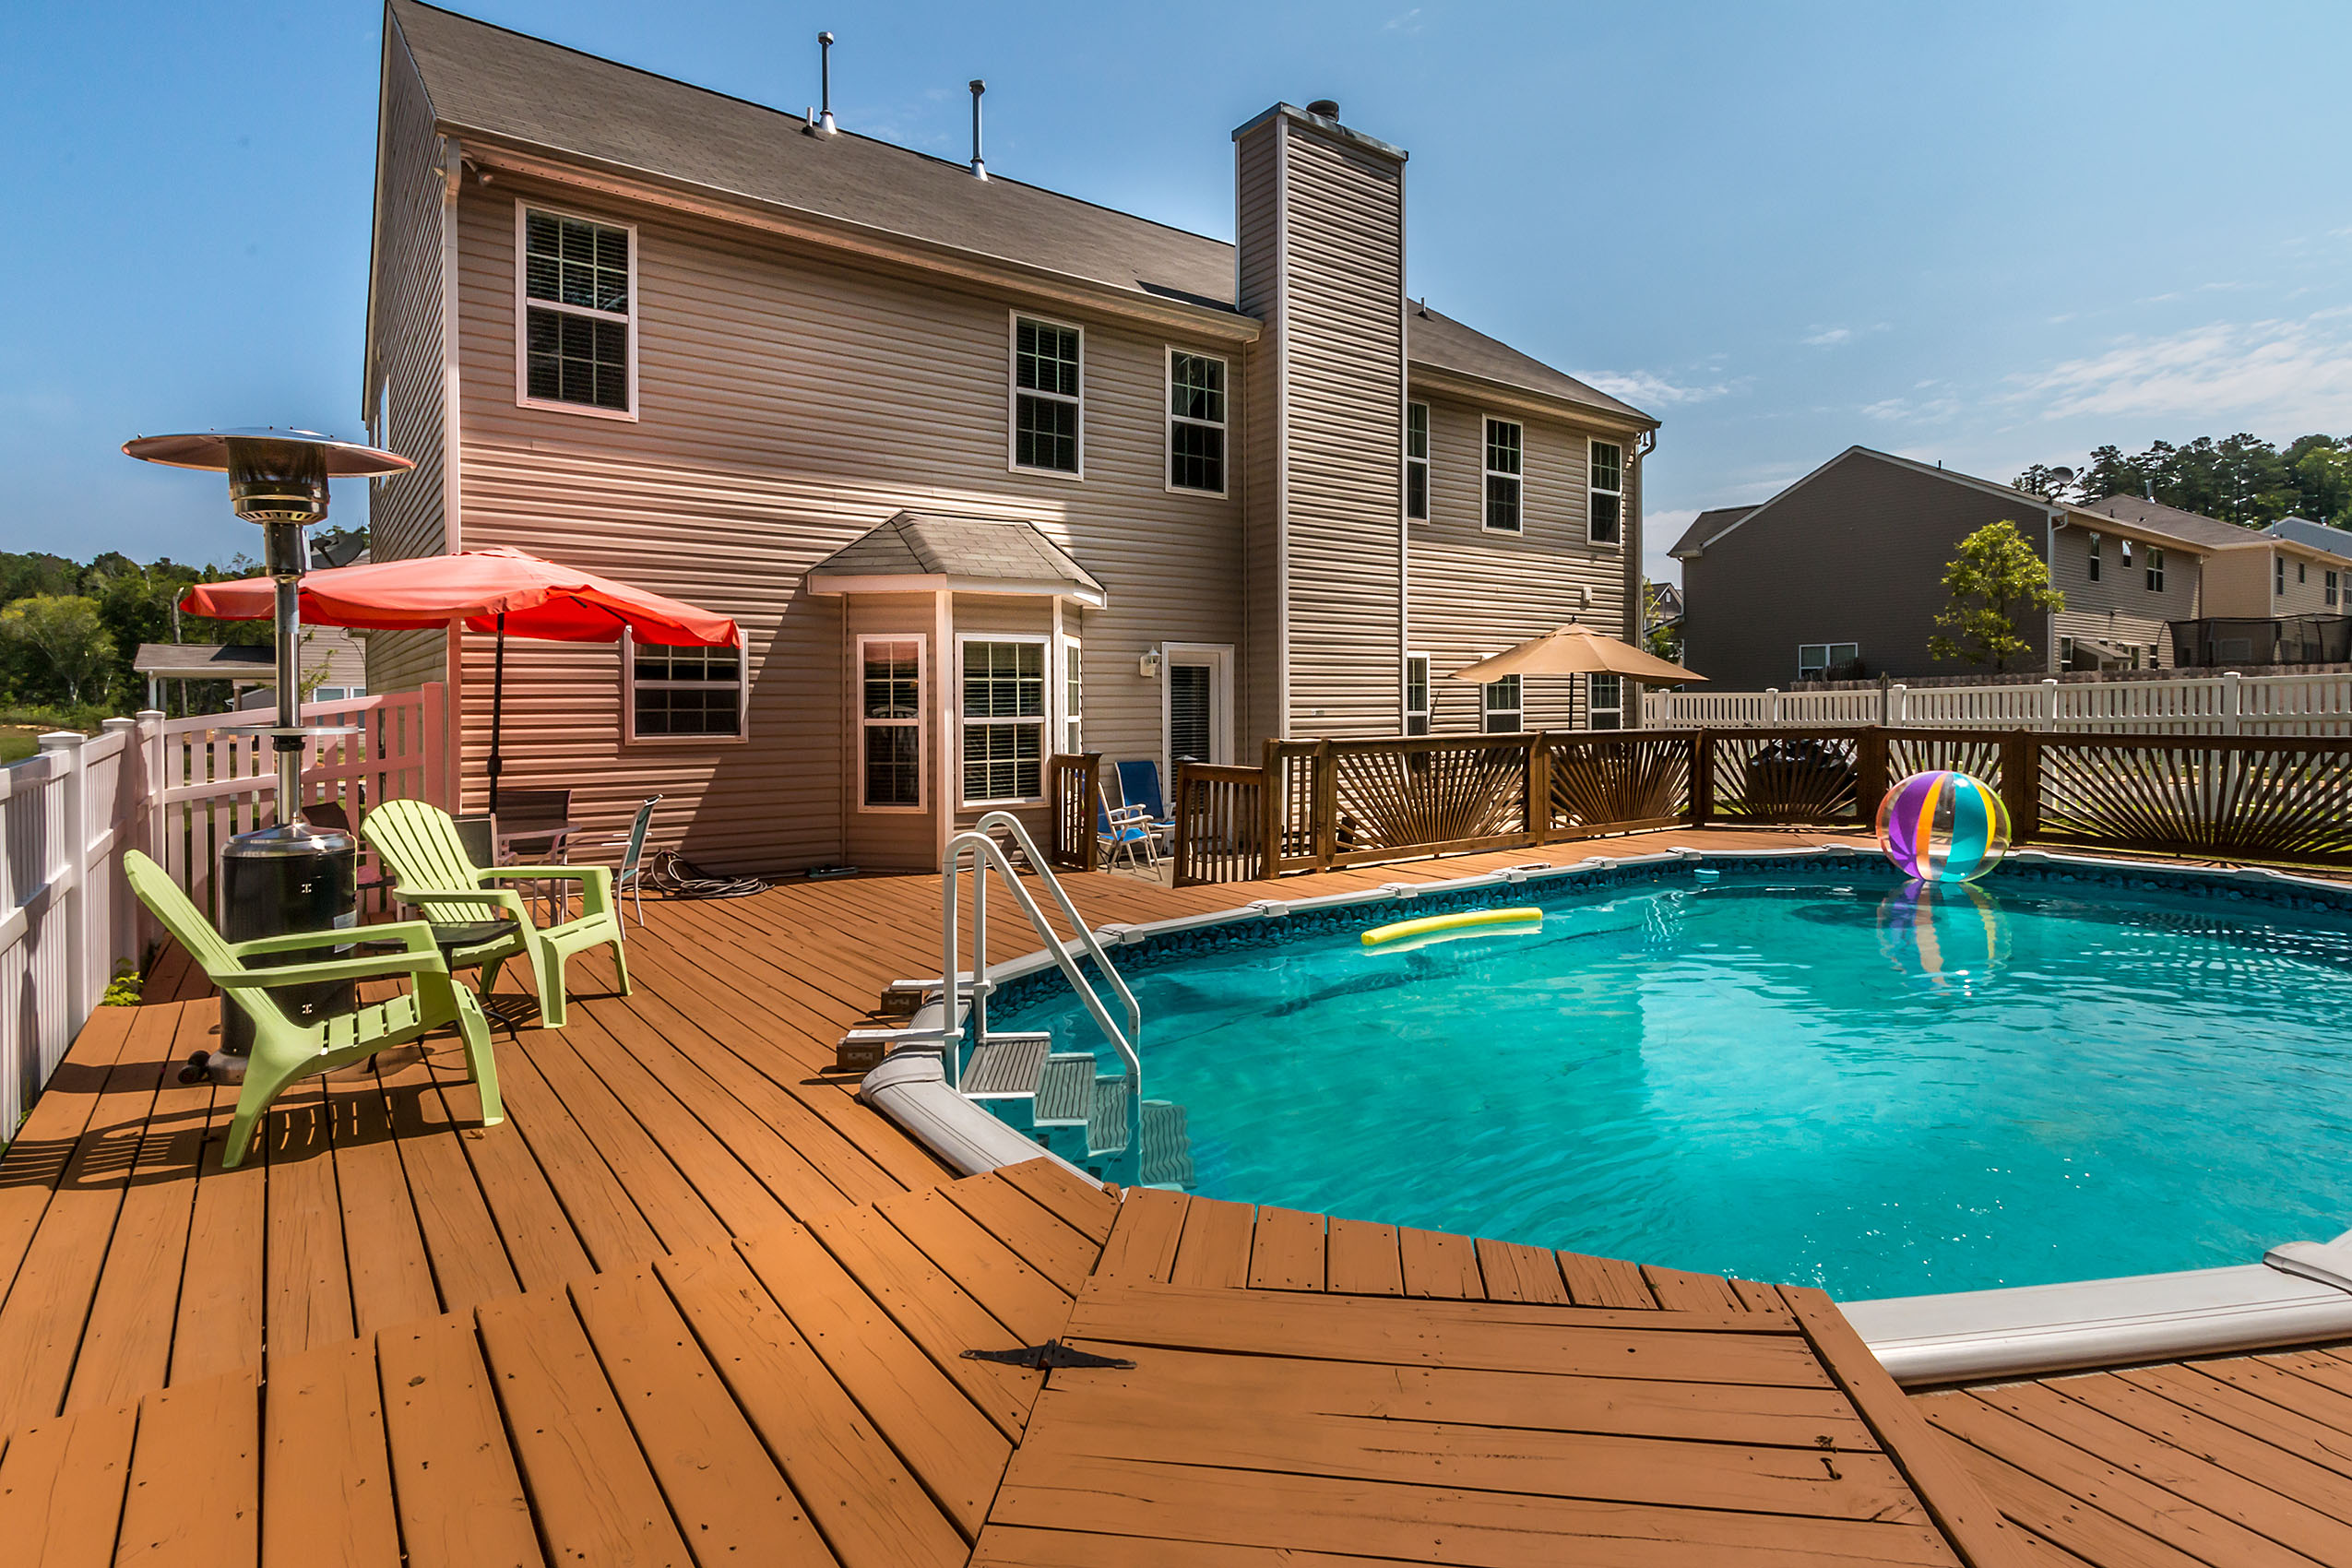 Just listed north charlotte home for sale with swimming pool for Houses for sale pool